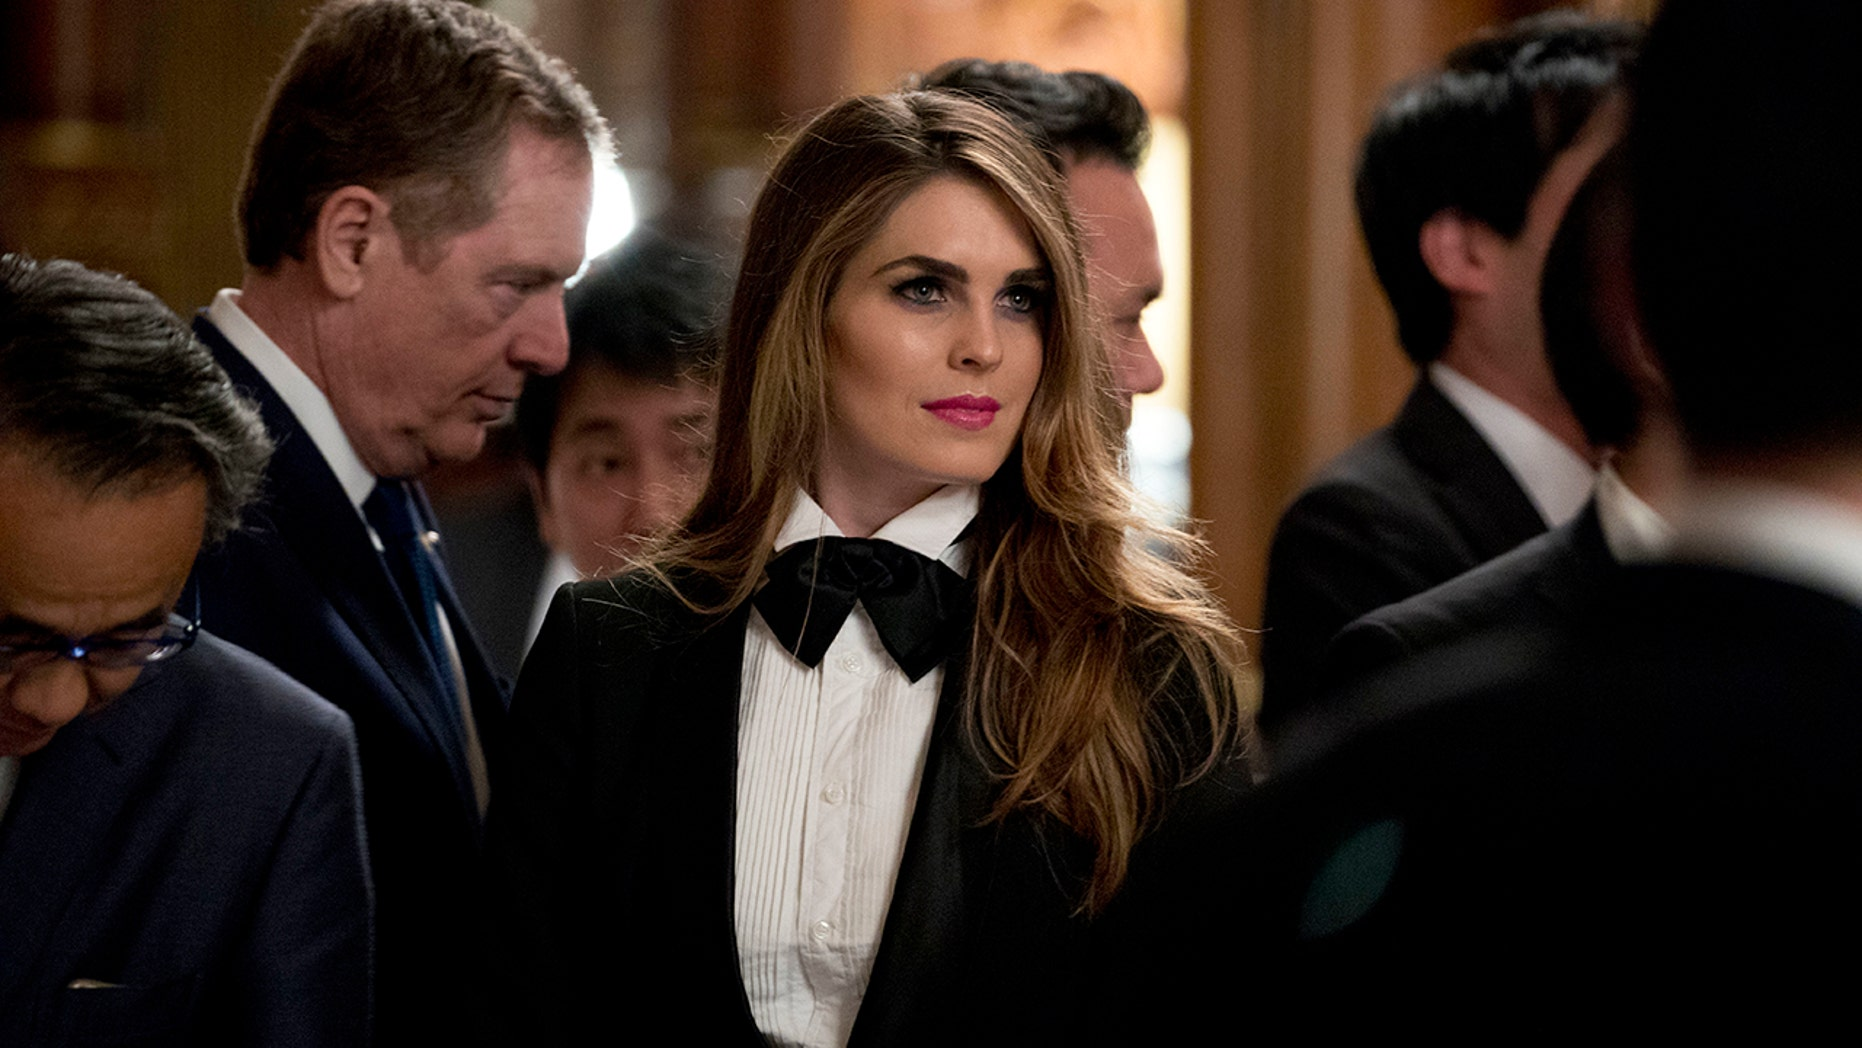 Hope Hicks stunned in a toned down tuxedo at Monday night's state dinner in Japan.